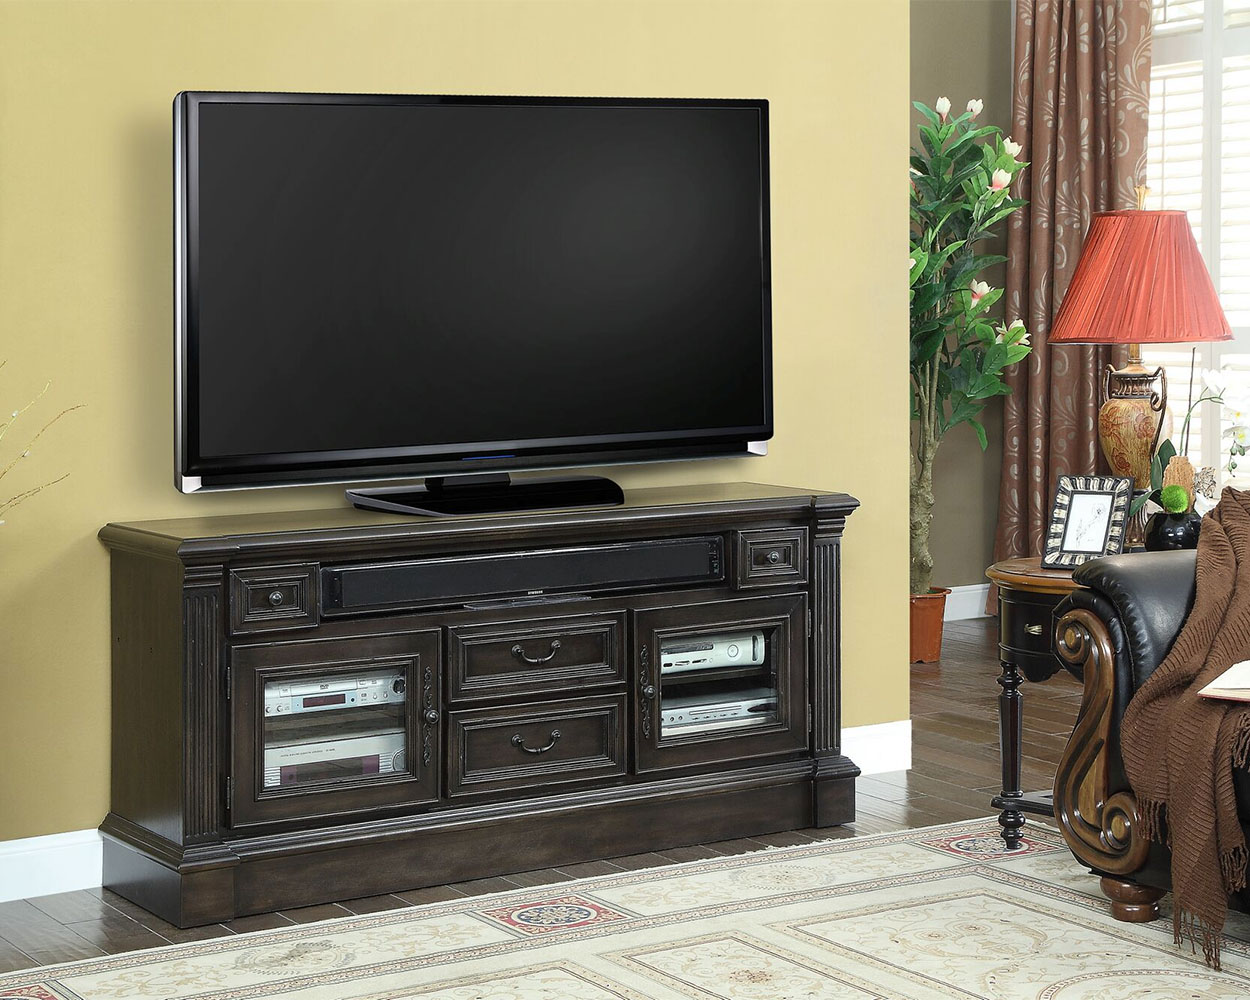 Parker House Entertainment Center 65 Quot Tv Stand Fairbanks